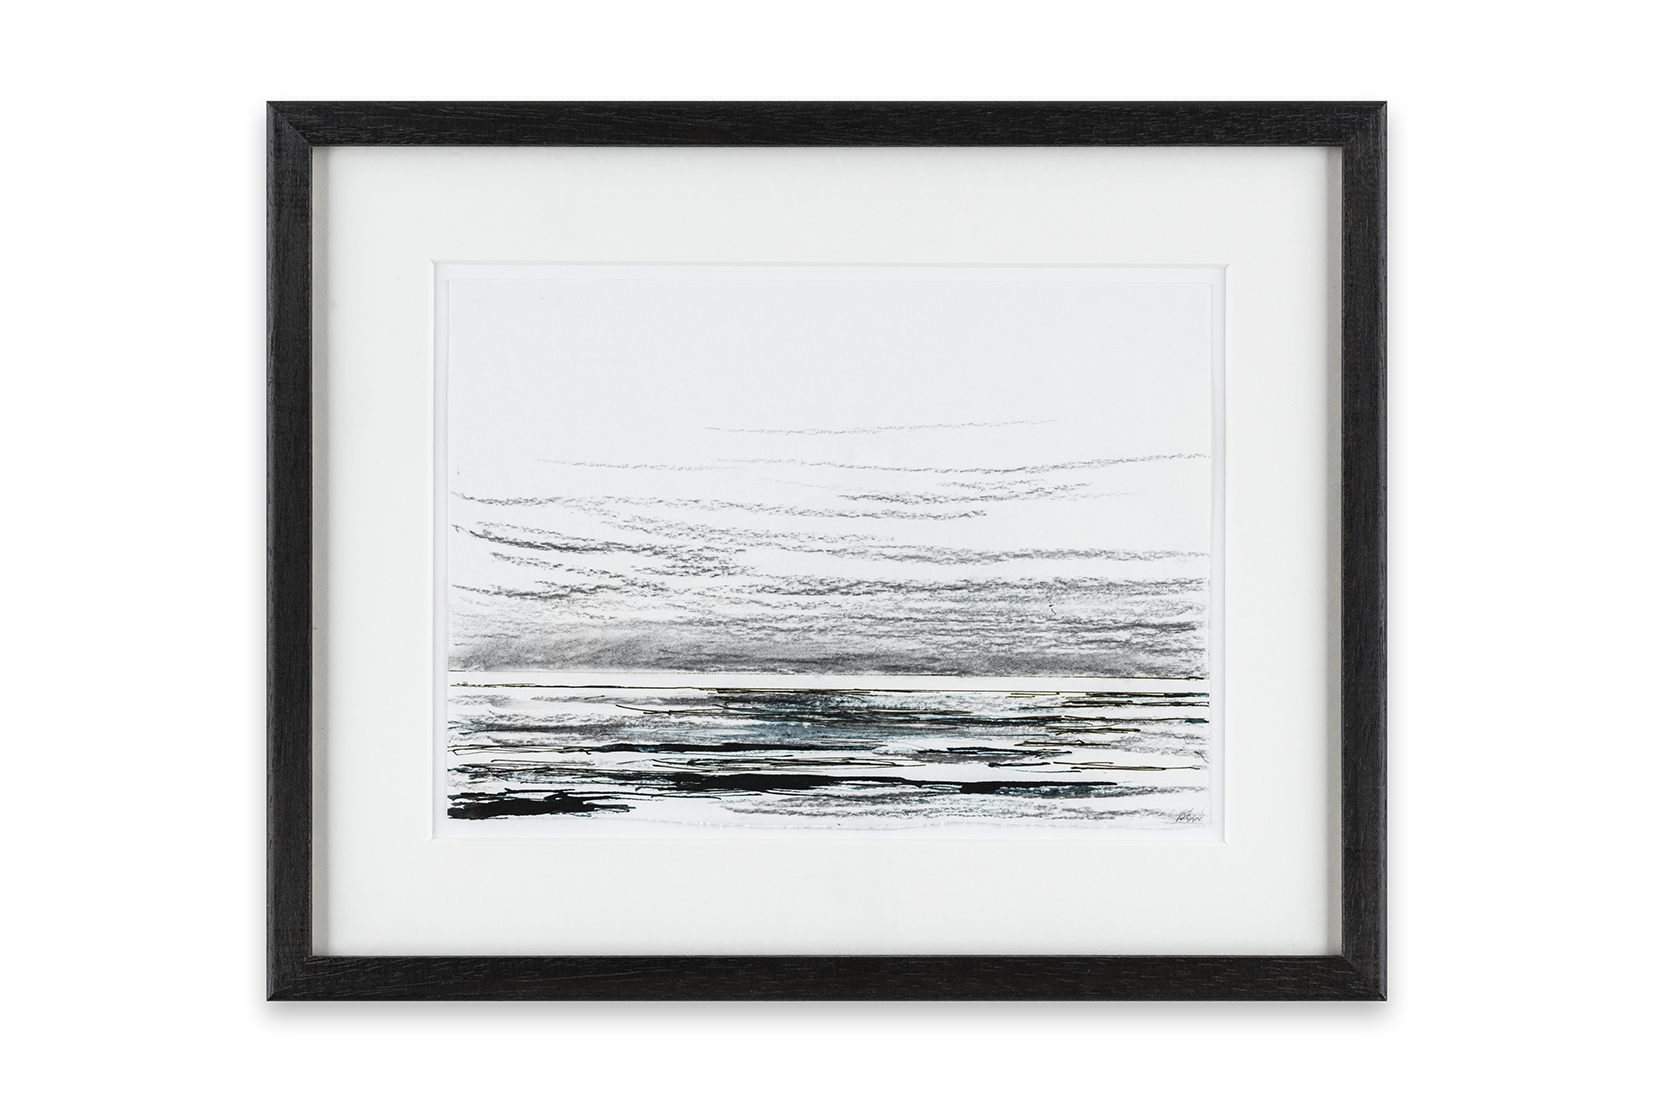 5 Low Tide, Time and Tide series, 15 x 21 cm, ink and charcoal on paper